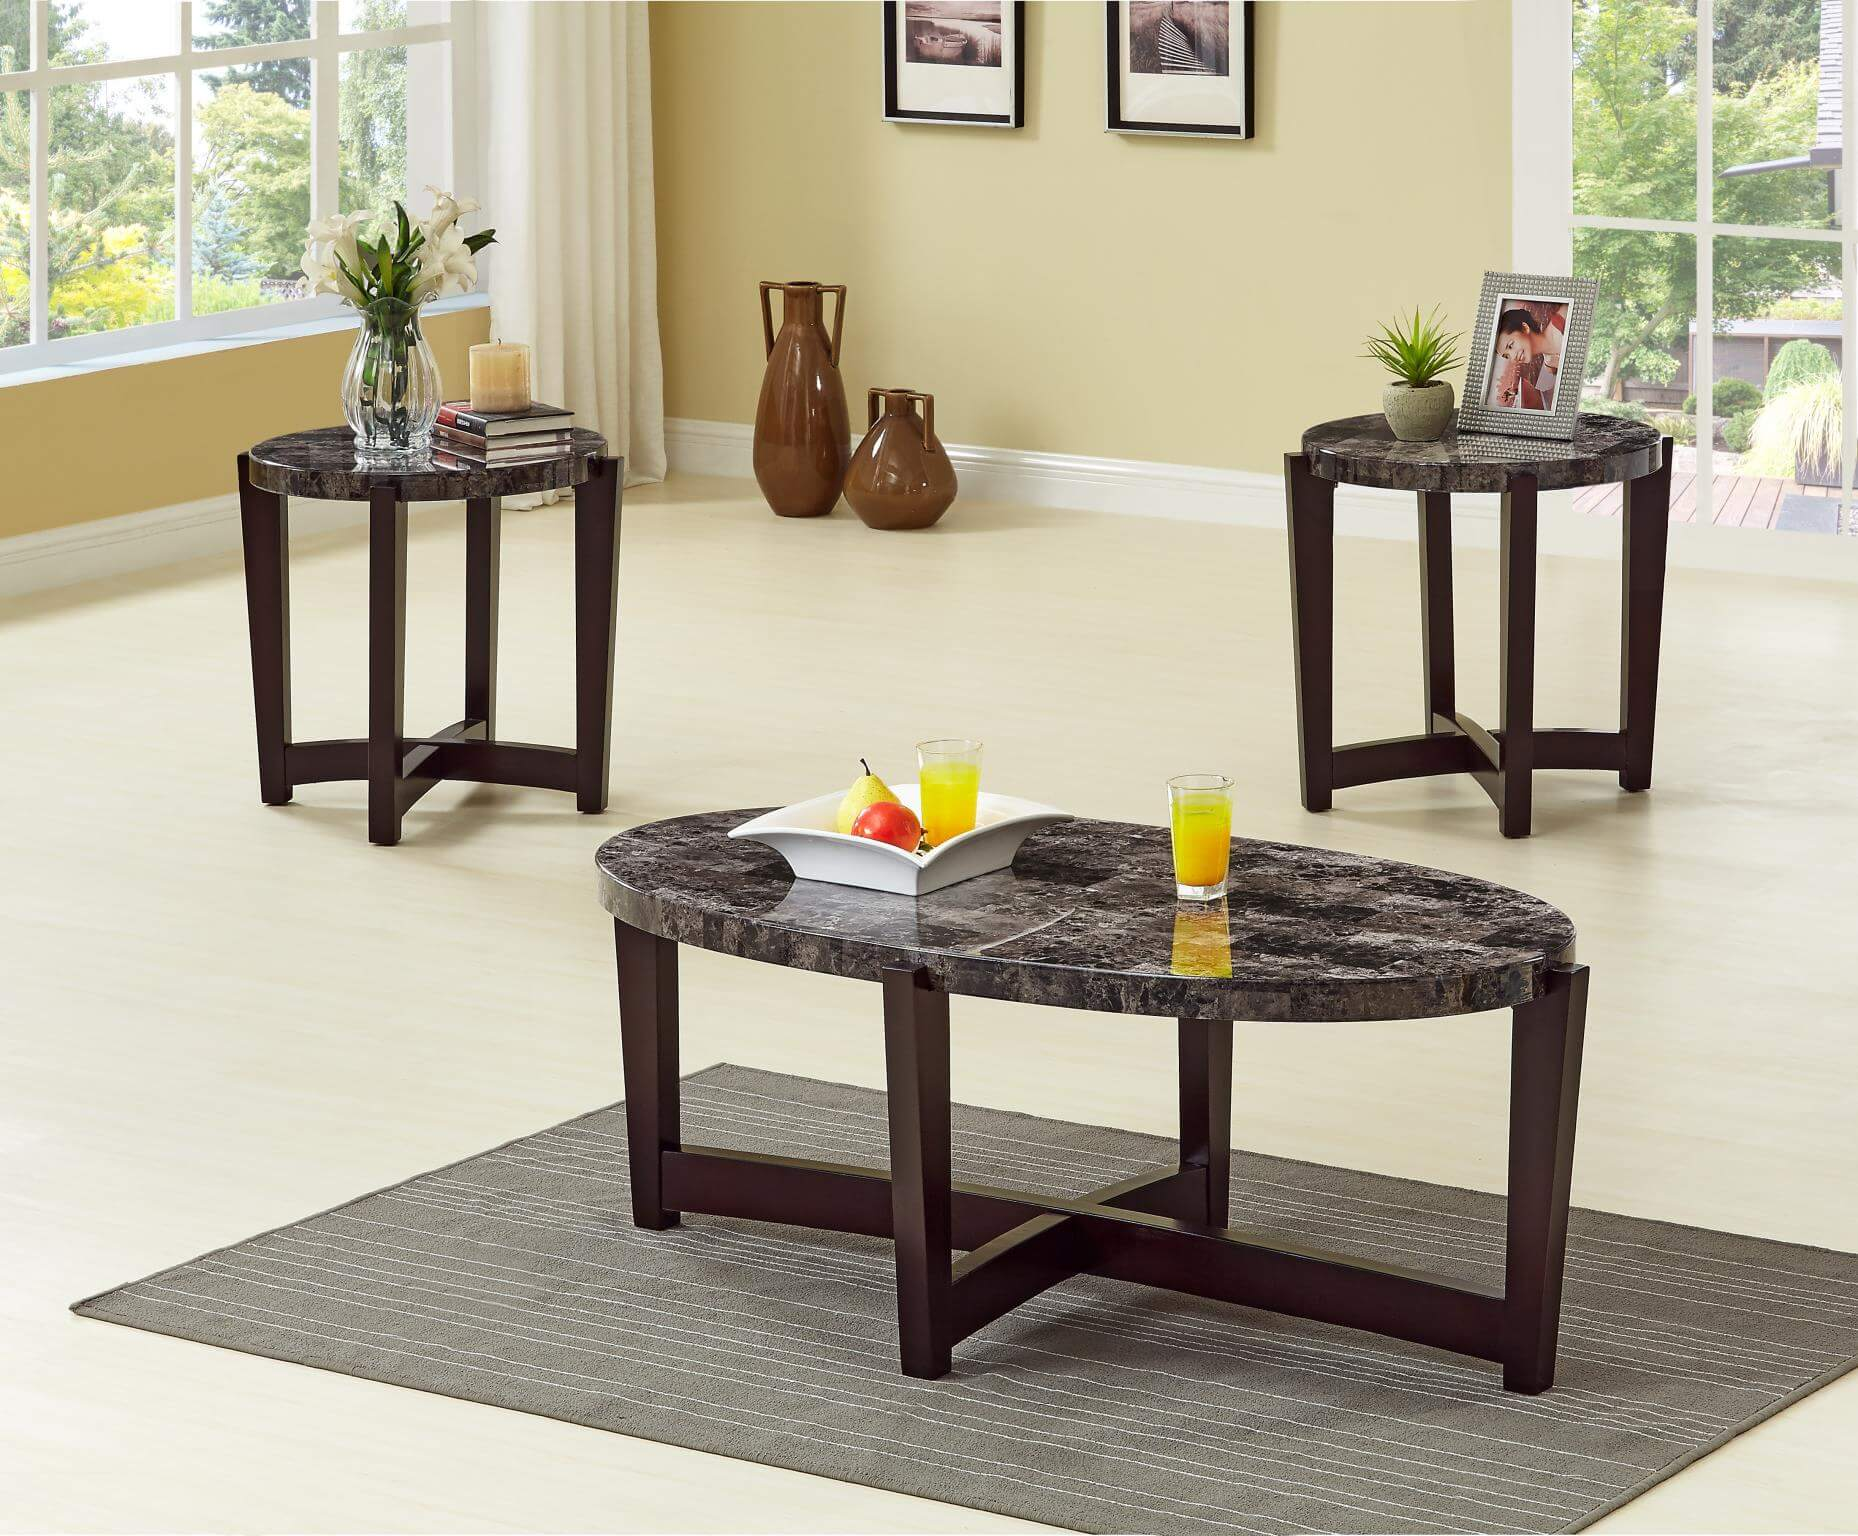 Wondrous 3362 Oval Faux Marble Coffee And End Table Set Caraccident5 Cool Chair Designs And Ideas Caraccident5Info